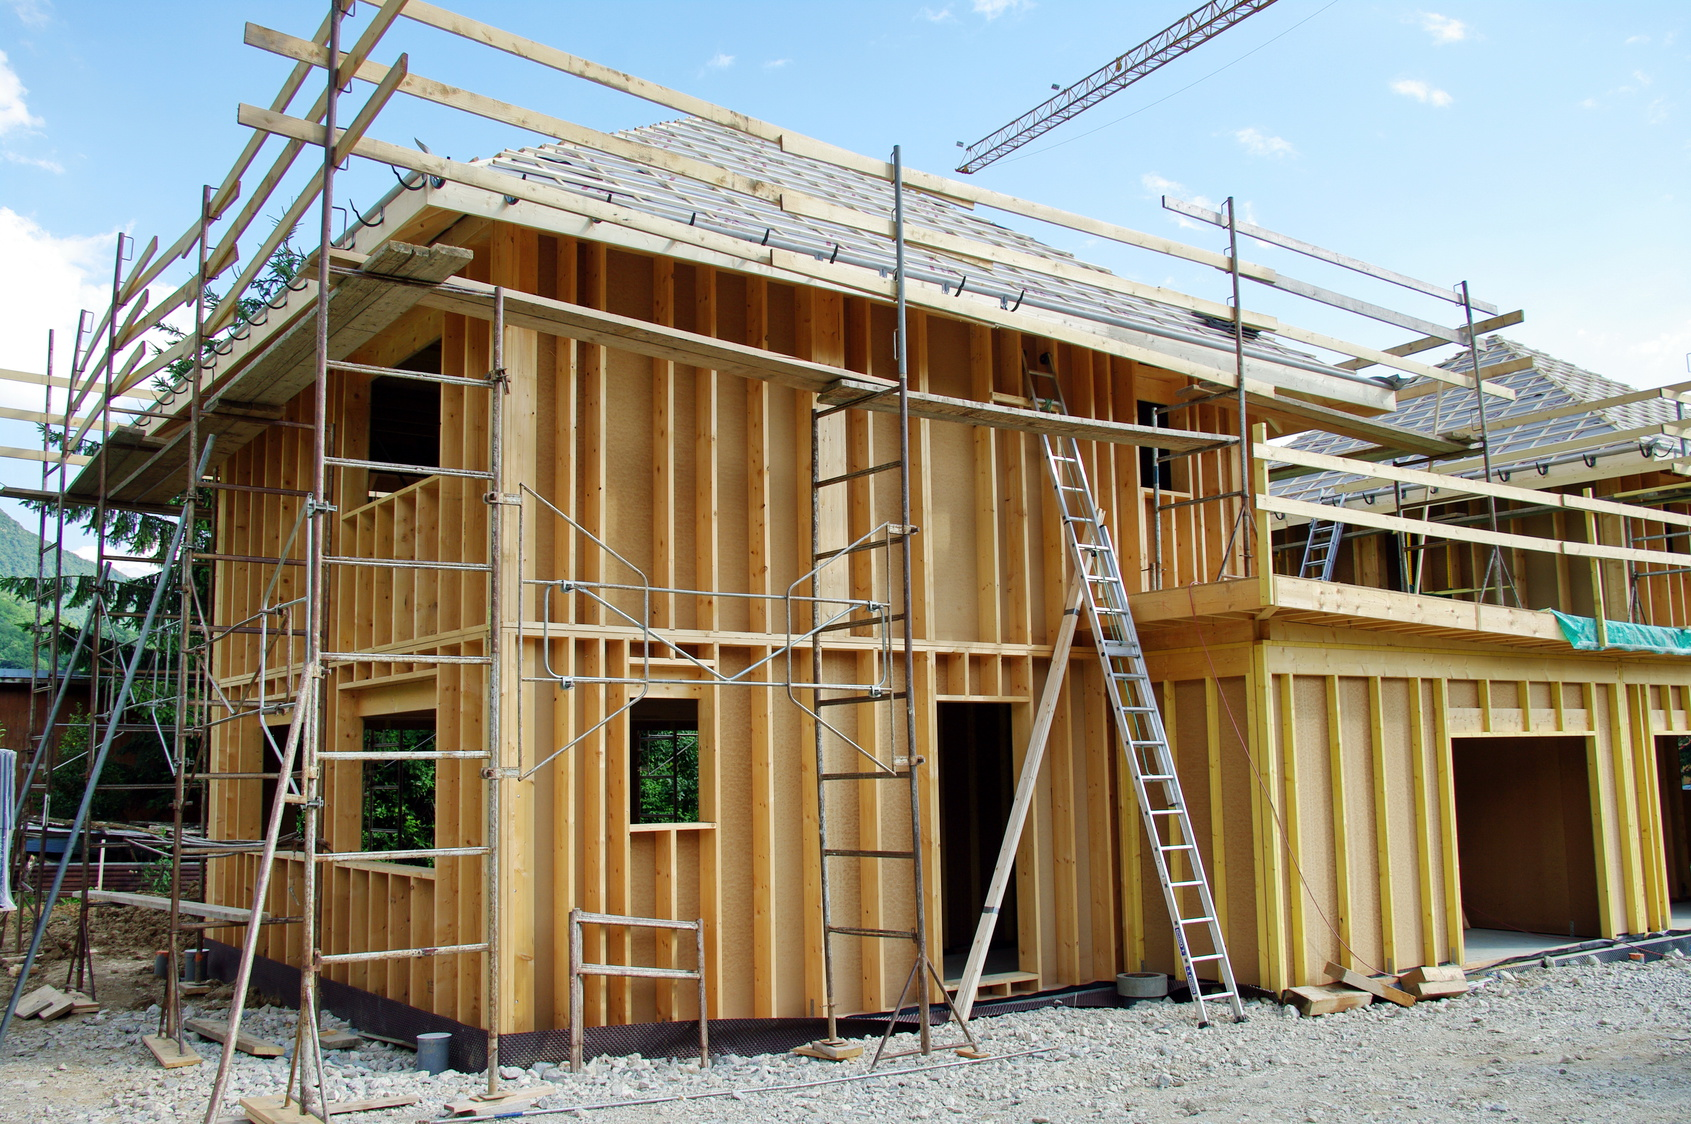 Les tapes de construction d une maison en kit for Etape de construction d une maison